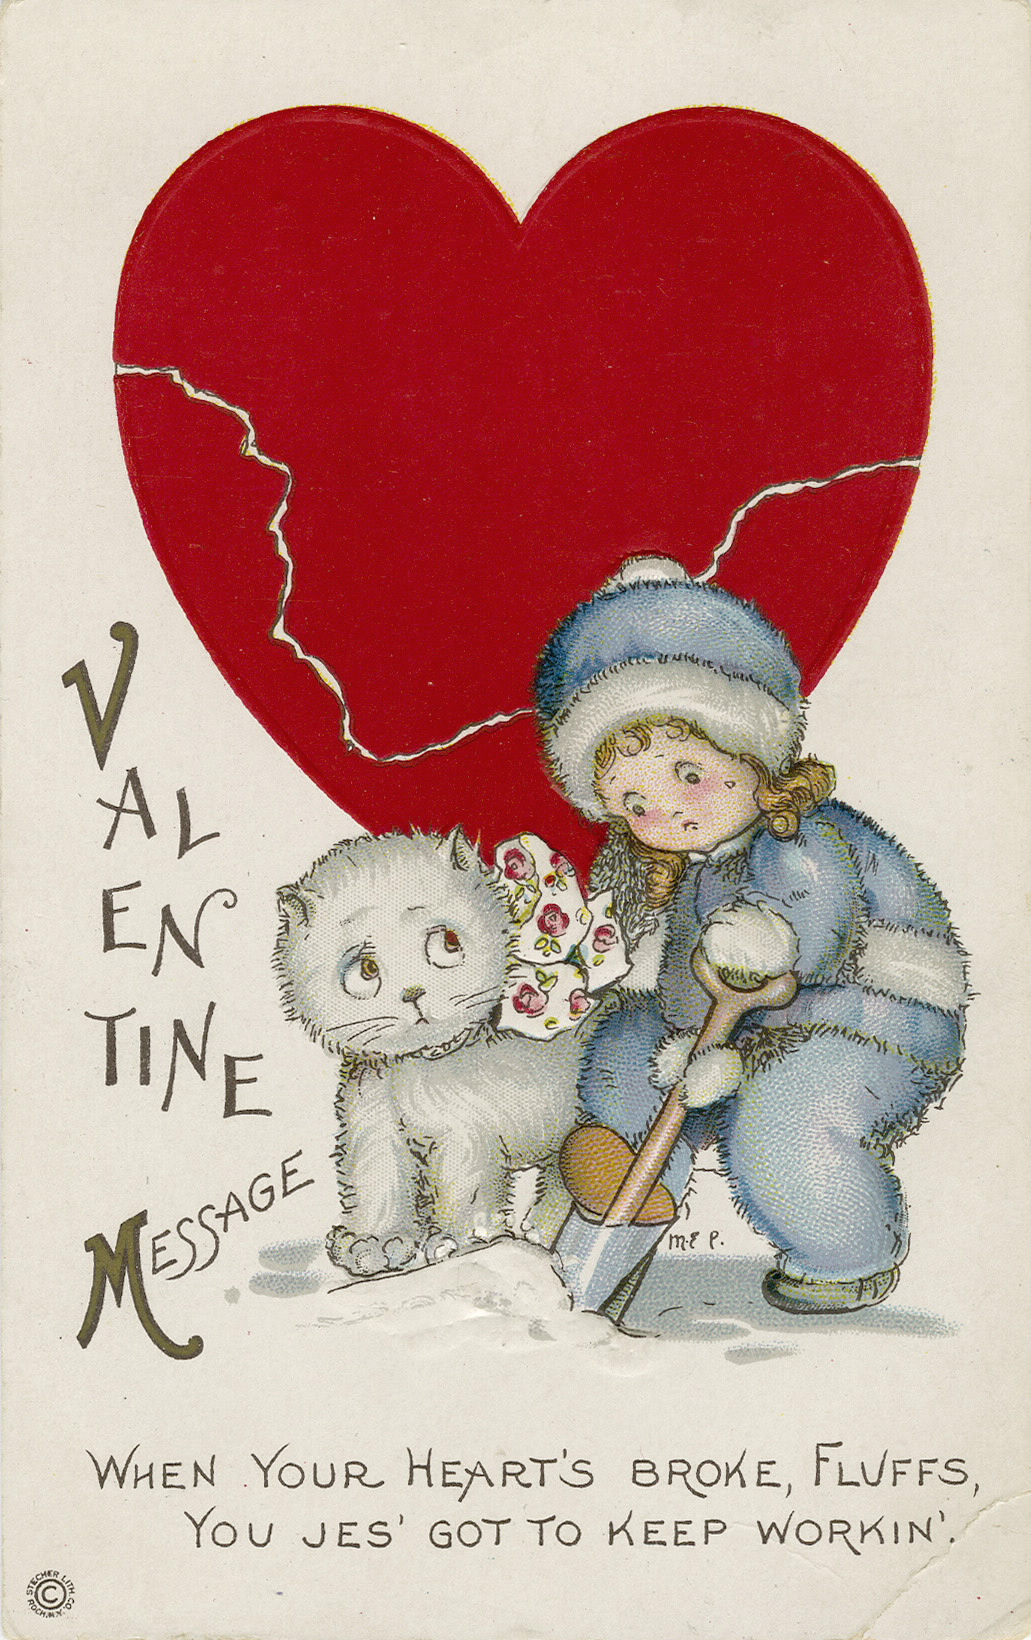 A vintage Valentine's Day greeting card showing a broken heart.